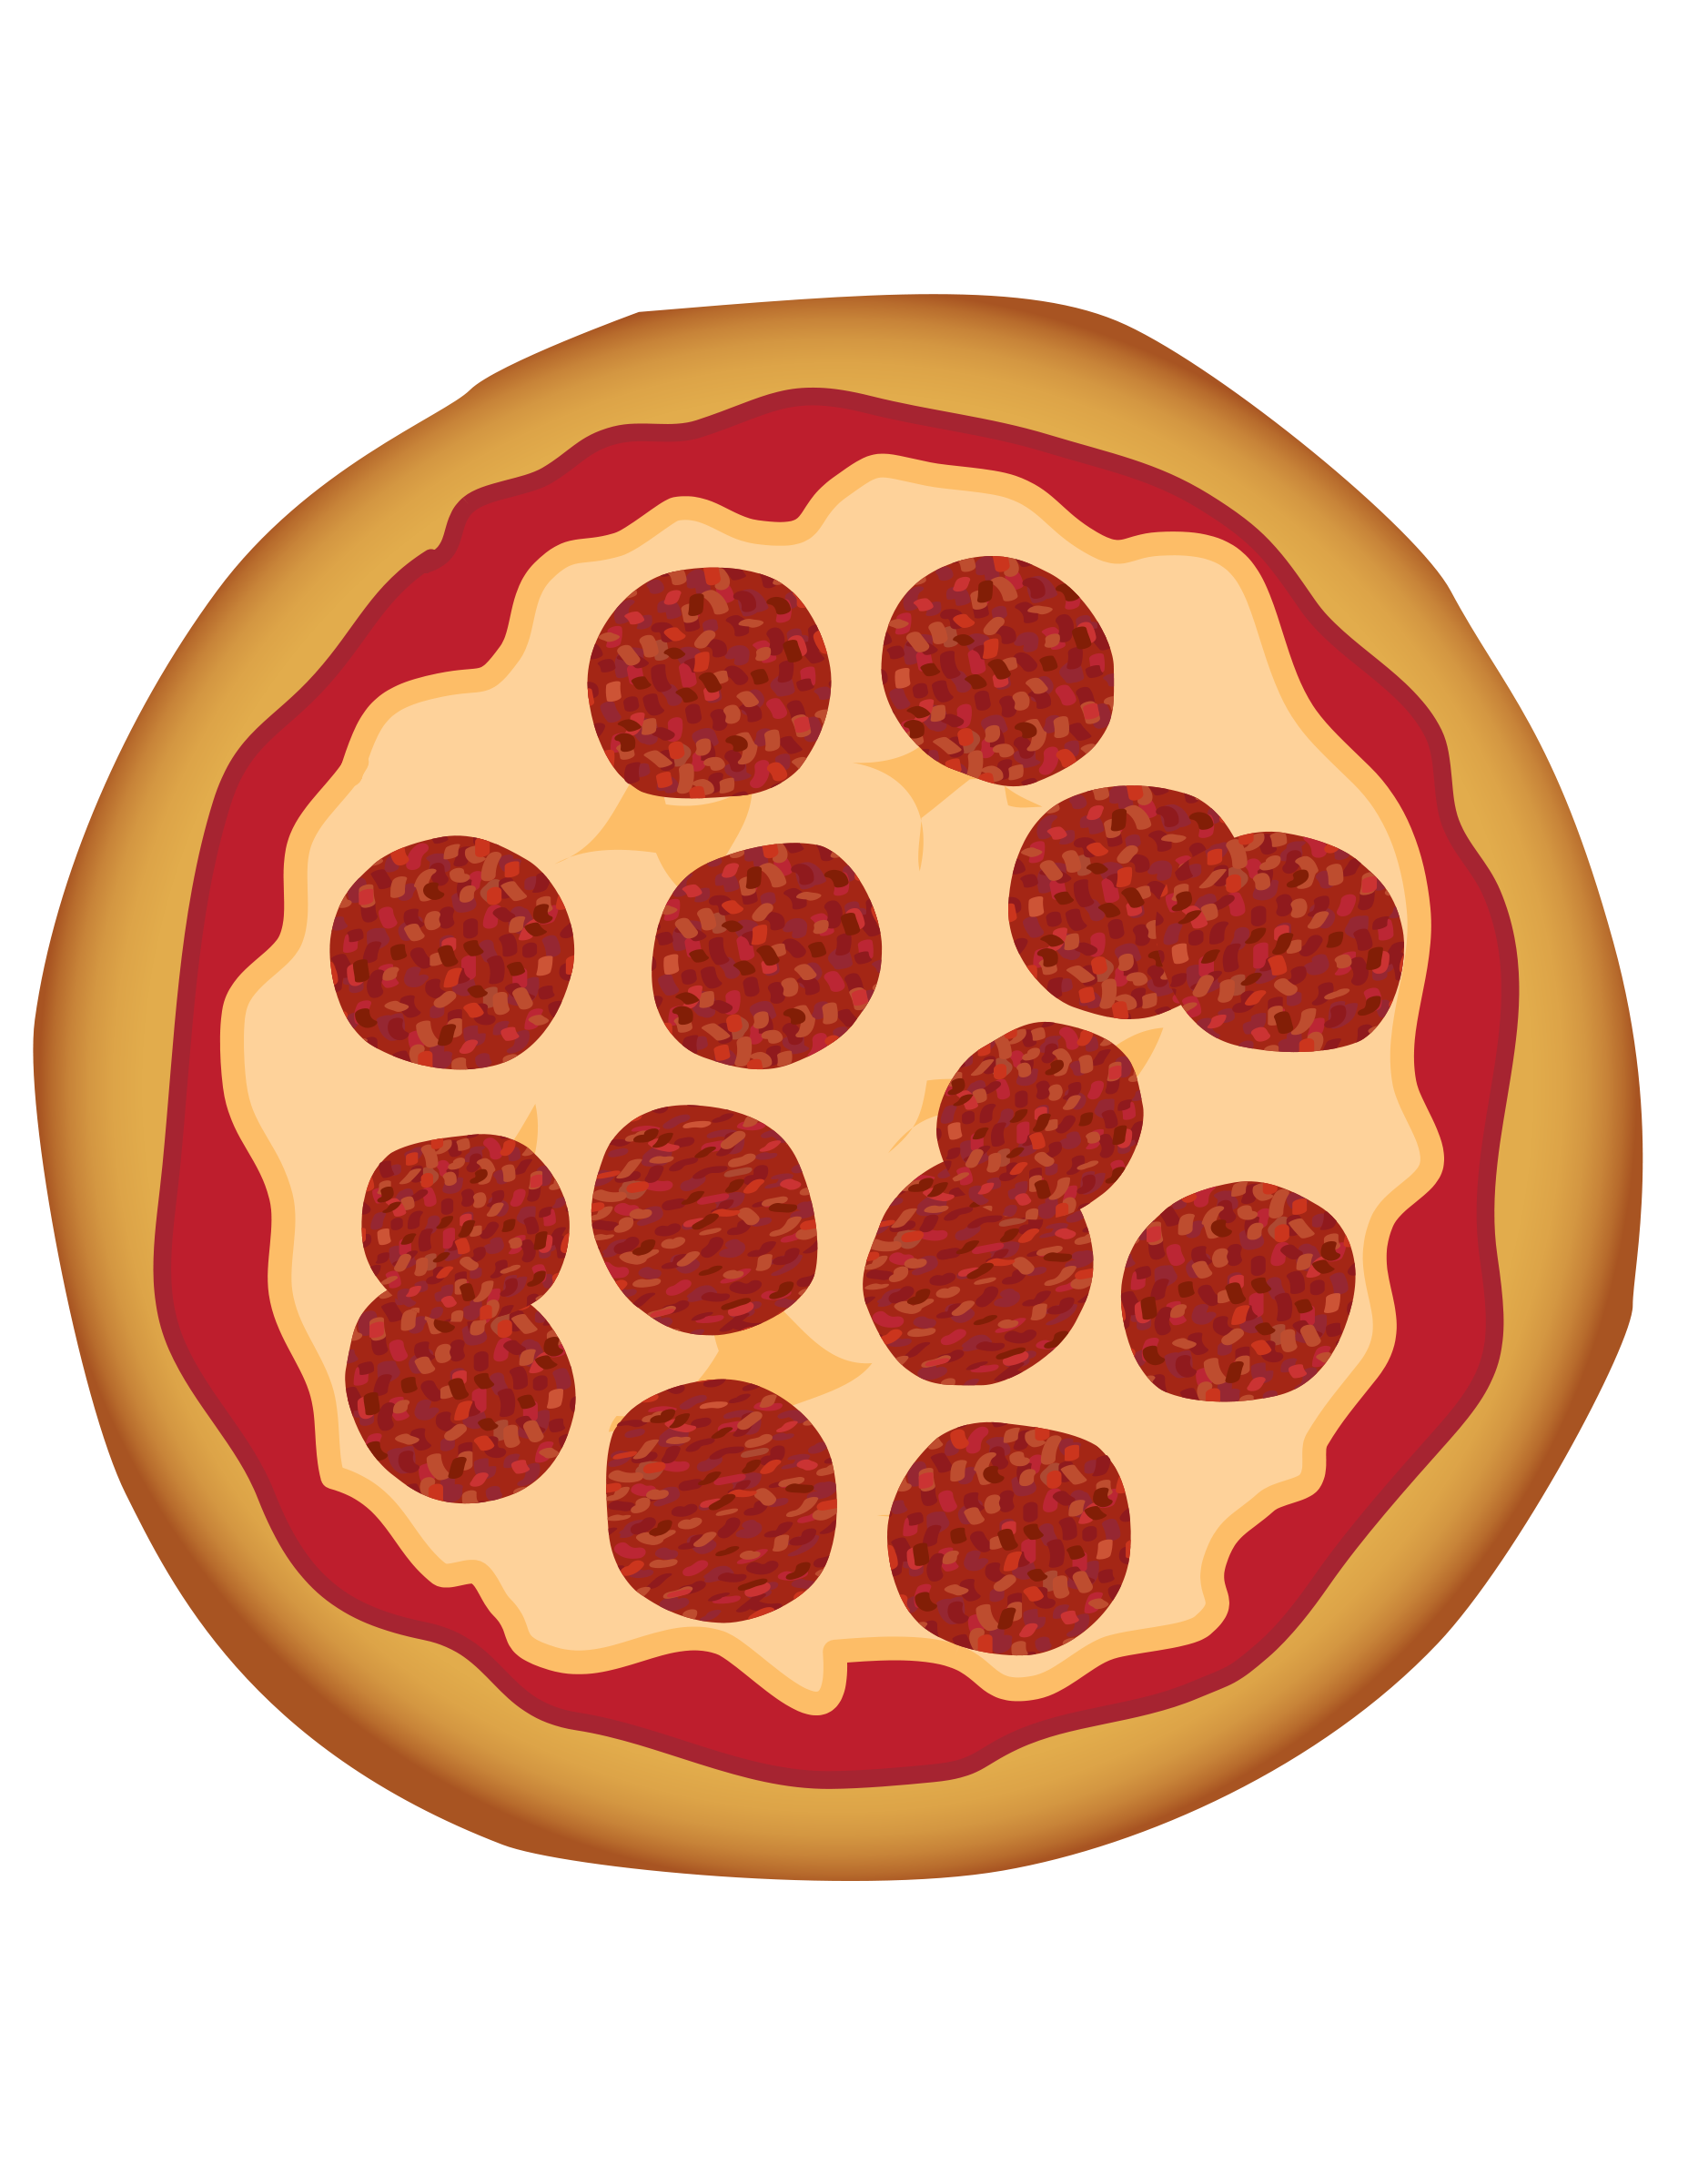 Pictures Of A Pizza - Cliparts.co